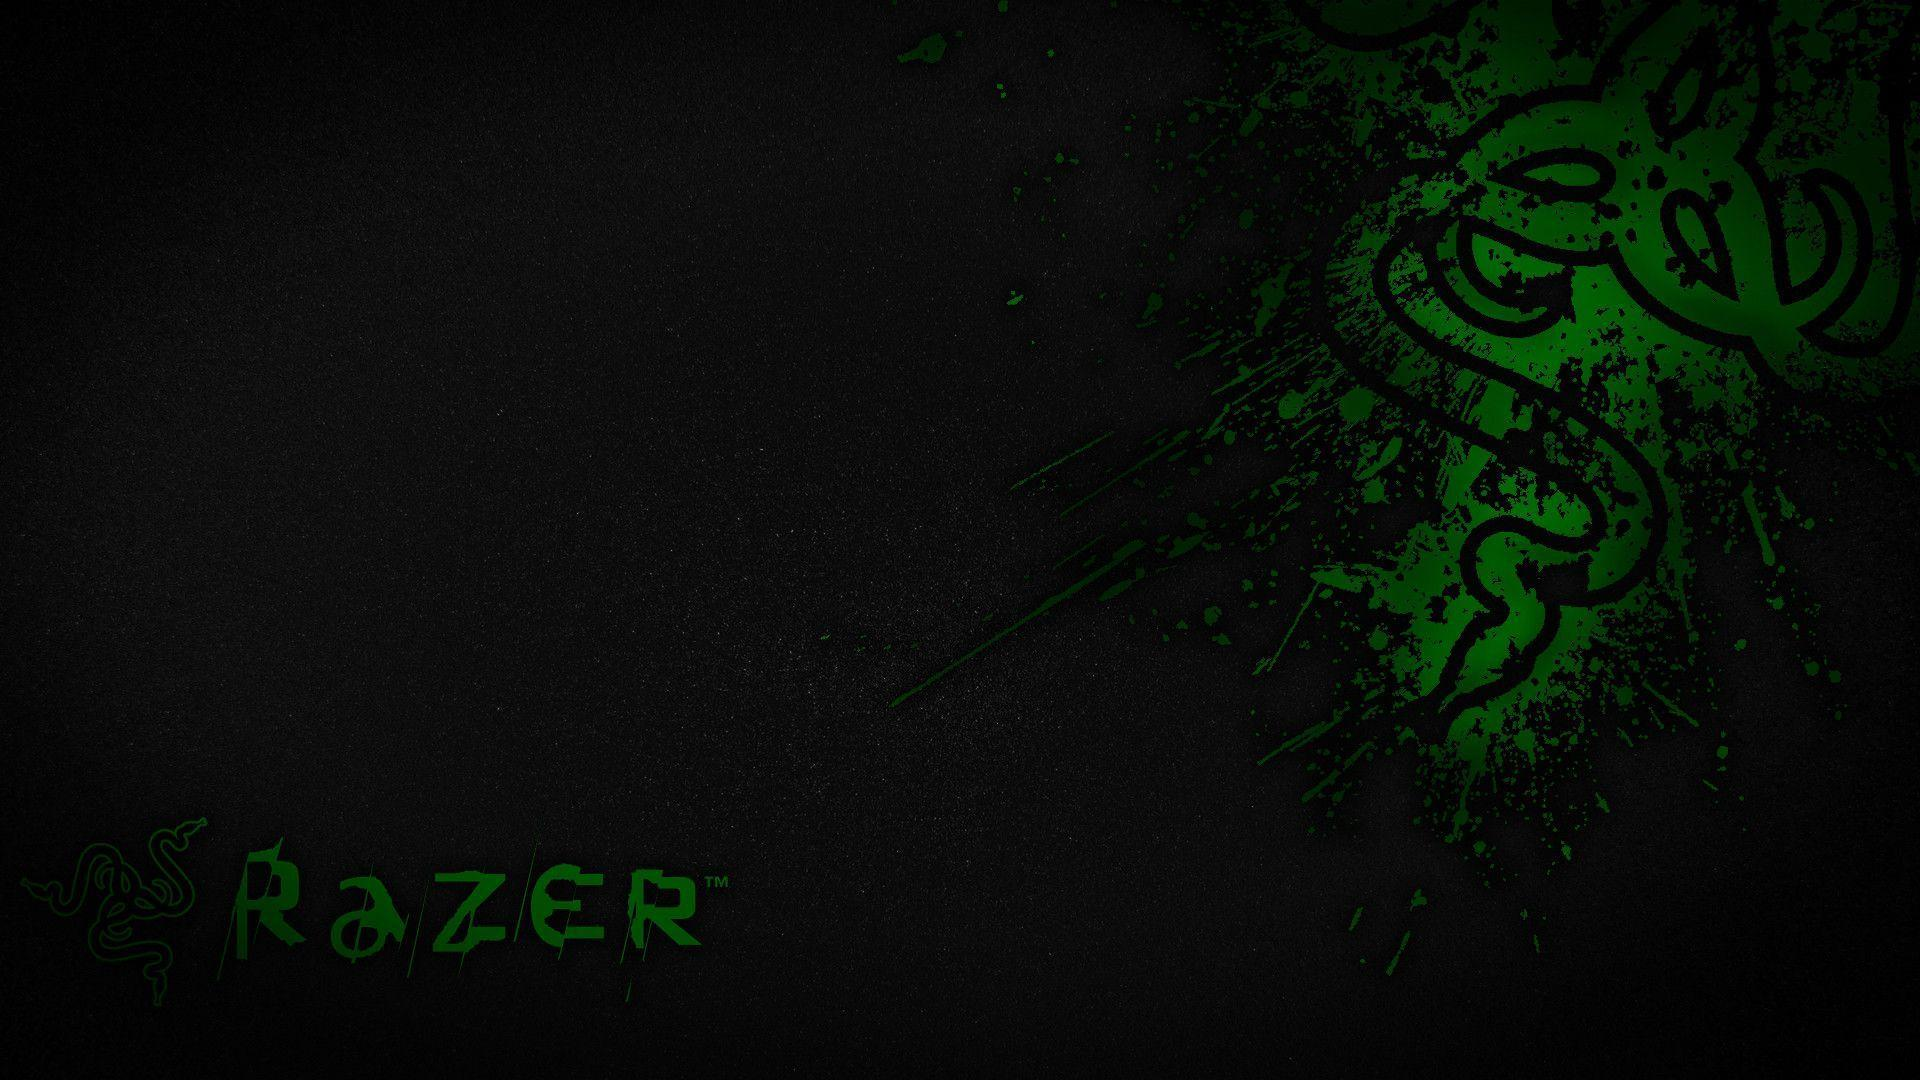 razer wallpaper 1920x1080 red - photo #18